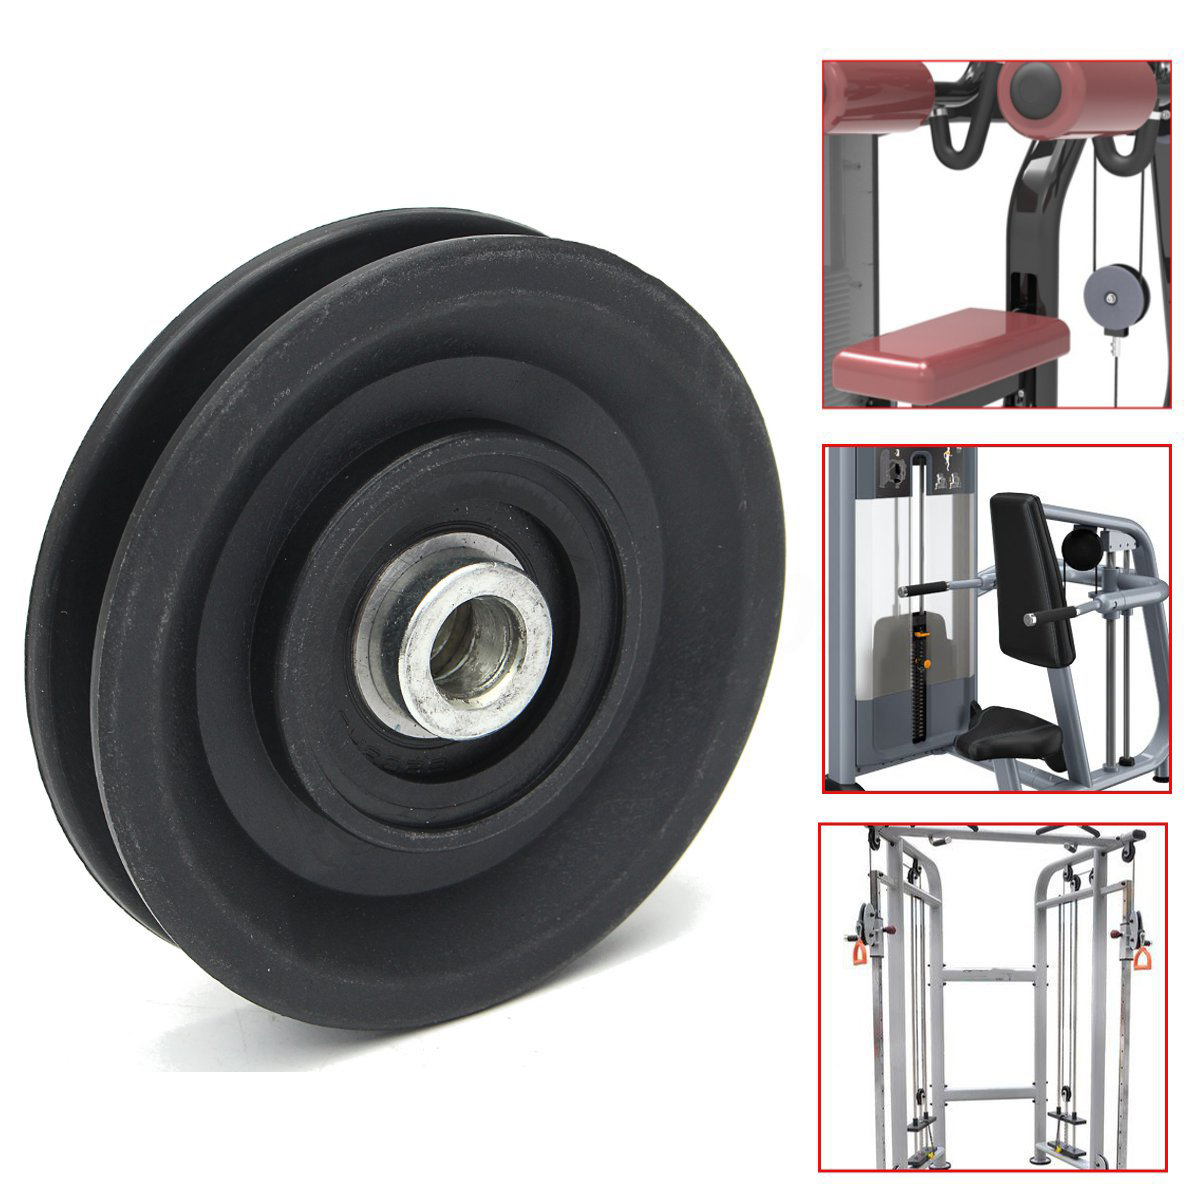 MAYITR High Quality Bearing Pulley 90mm Wearproof Nylon Bearing Pulley Wheel Cable Gym Universal Fitness Equipment Part ...